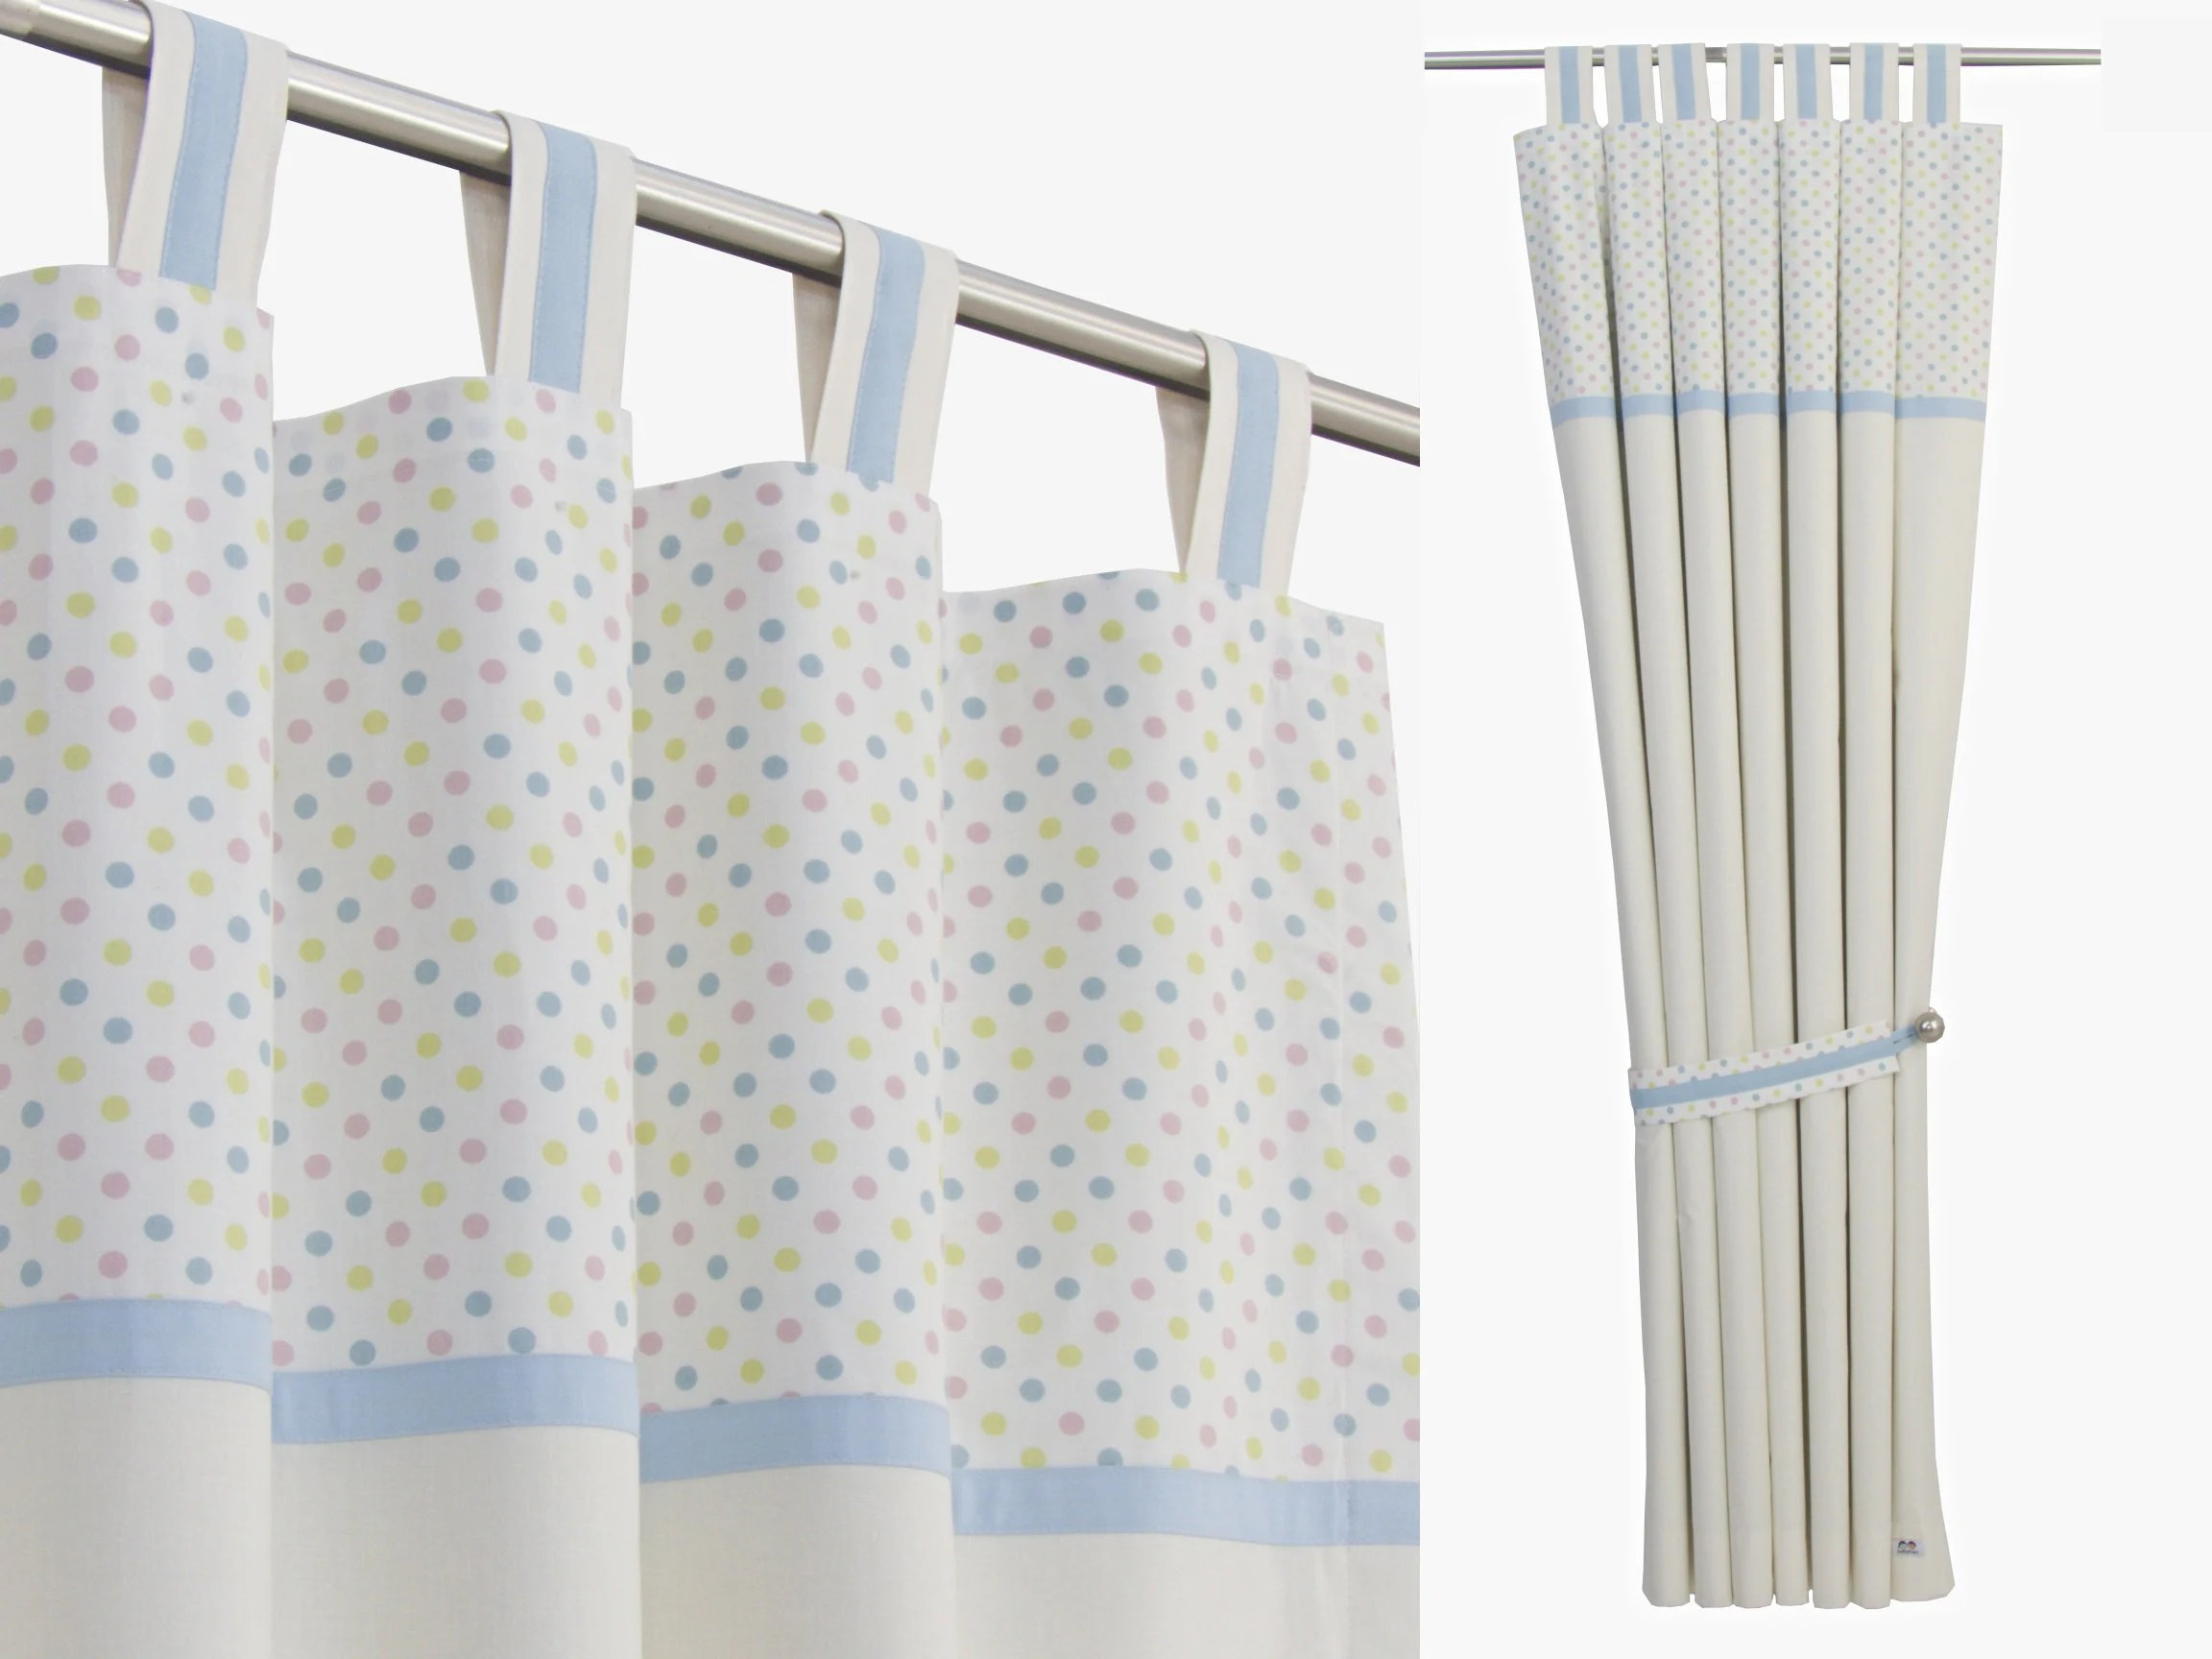 Boys Nursery Curtains Baby Boy Nursery Cream Curtains Cream Cotton Panels Pastel Nursery For Boys Beige Blue Nursery Blackout Lining Available Sold As Pair